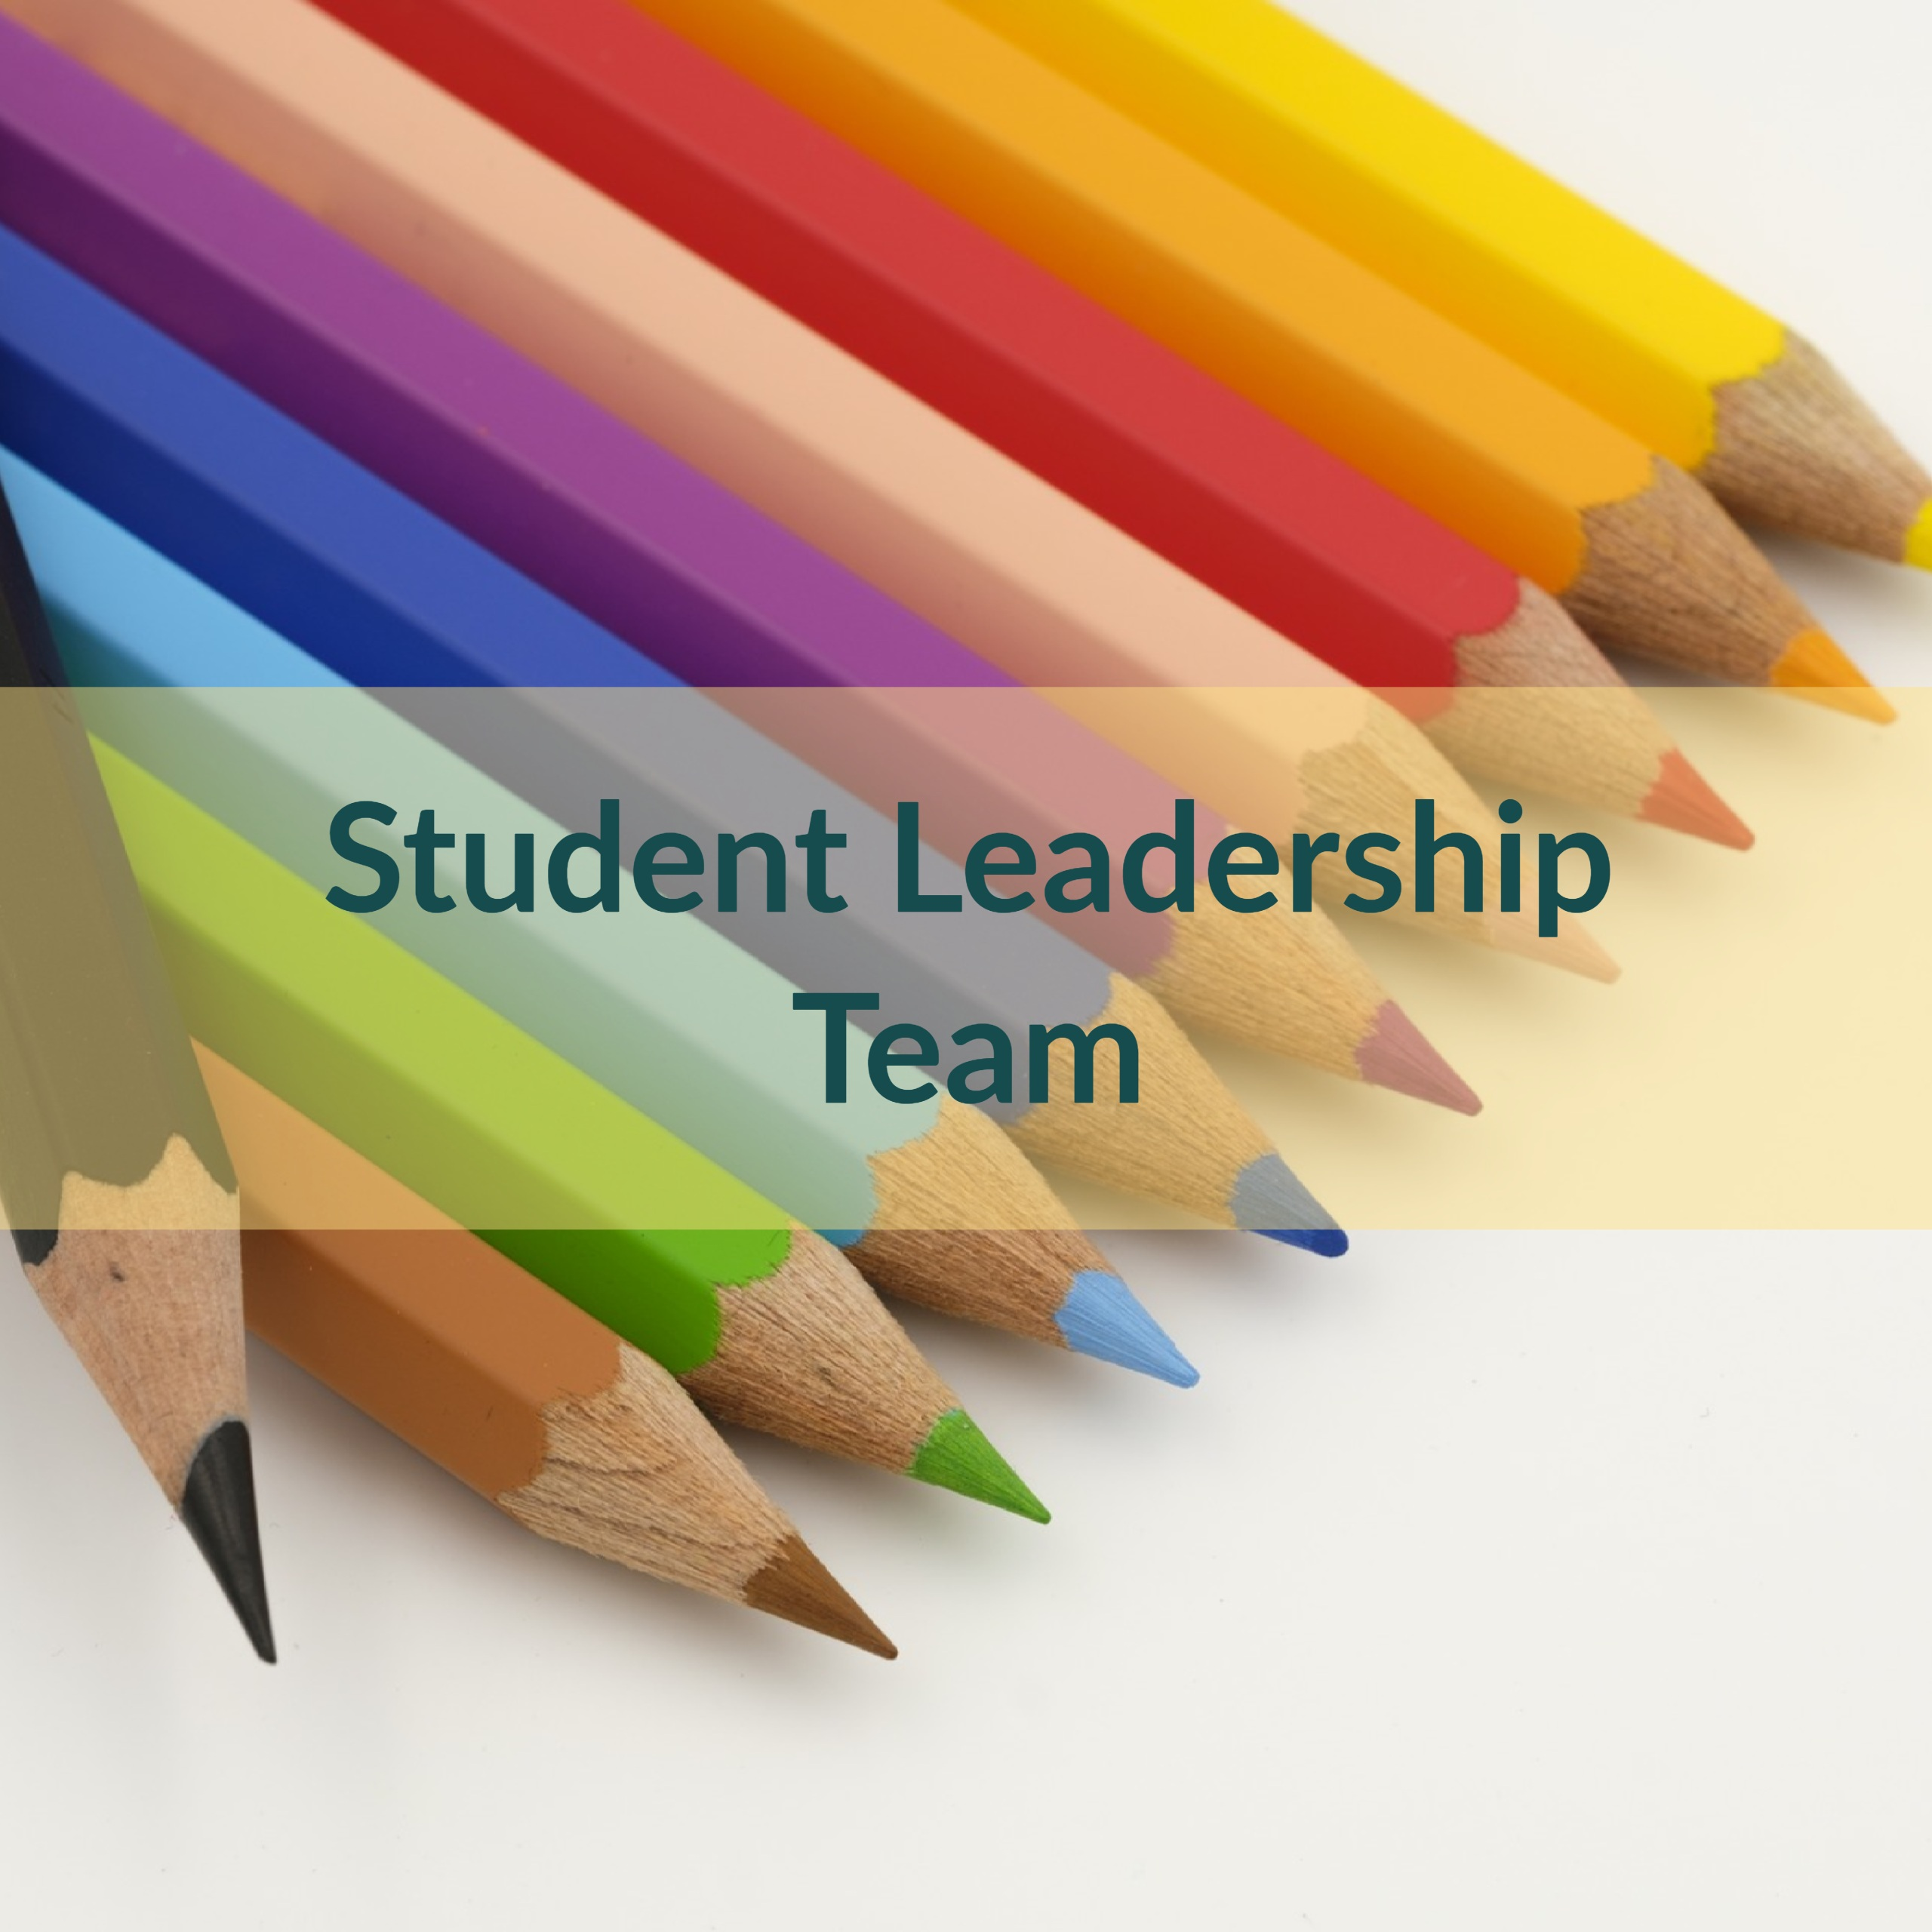 Student Leadership Team for 2018